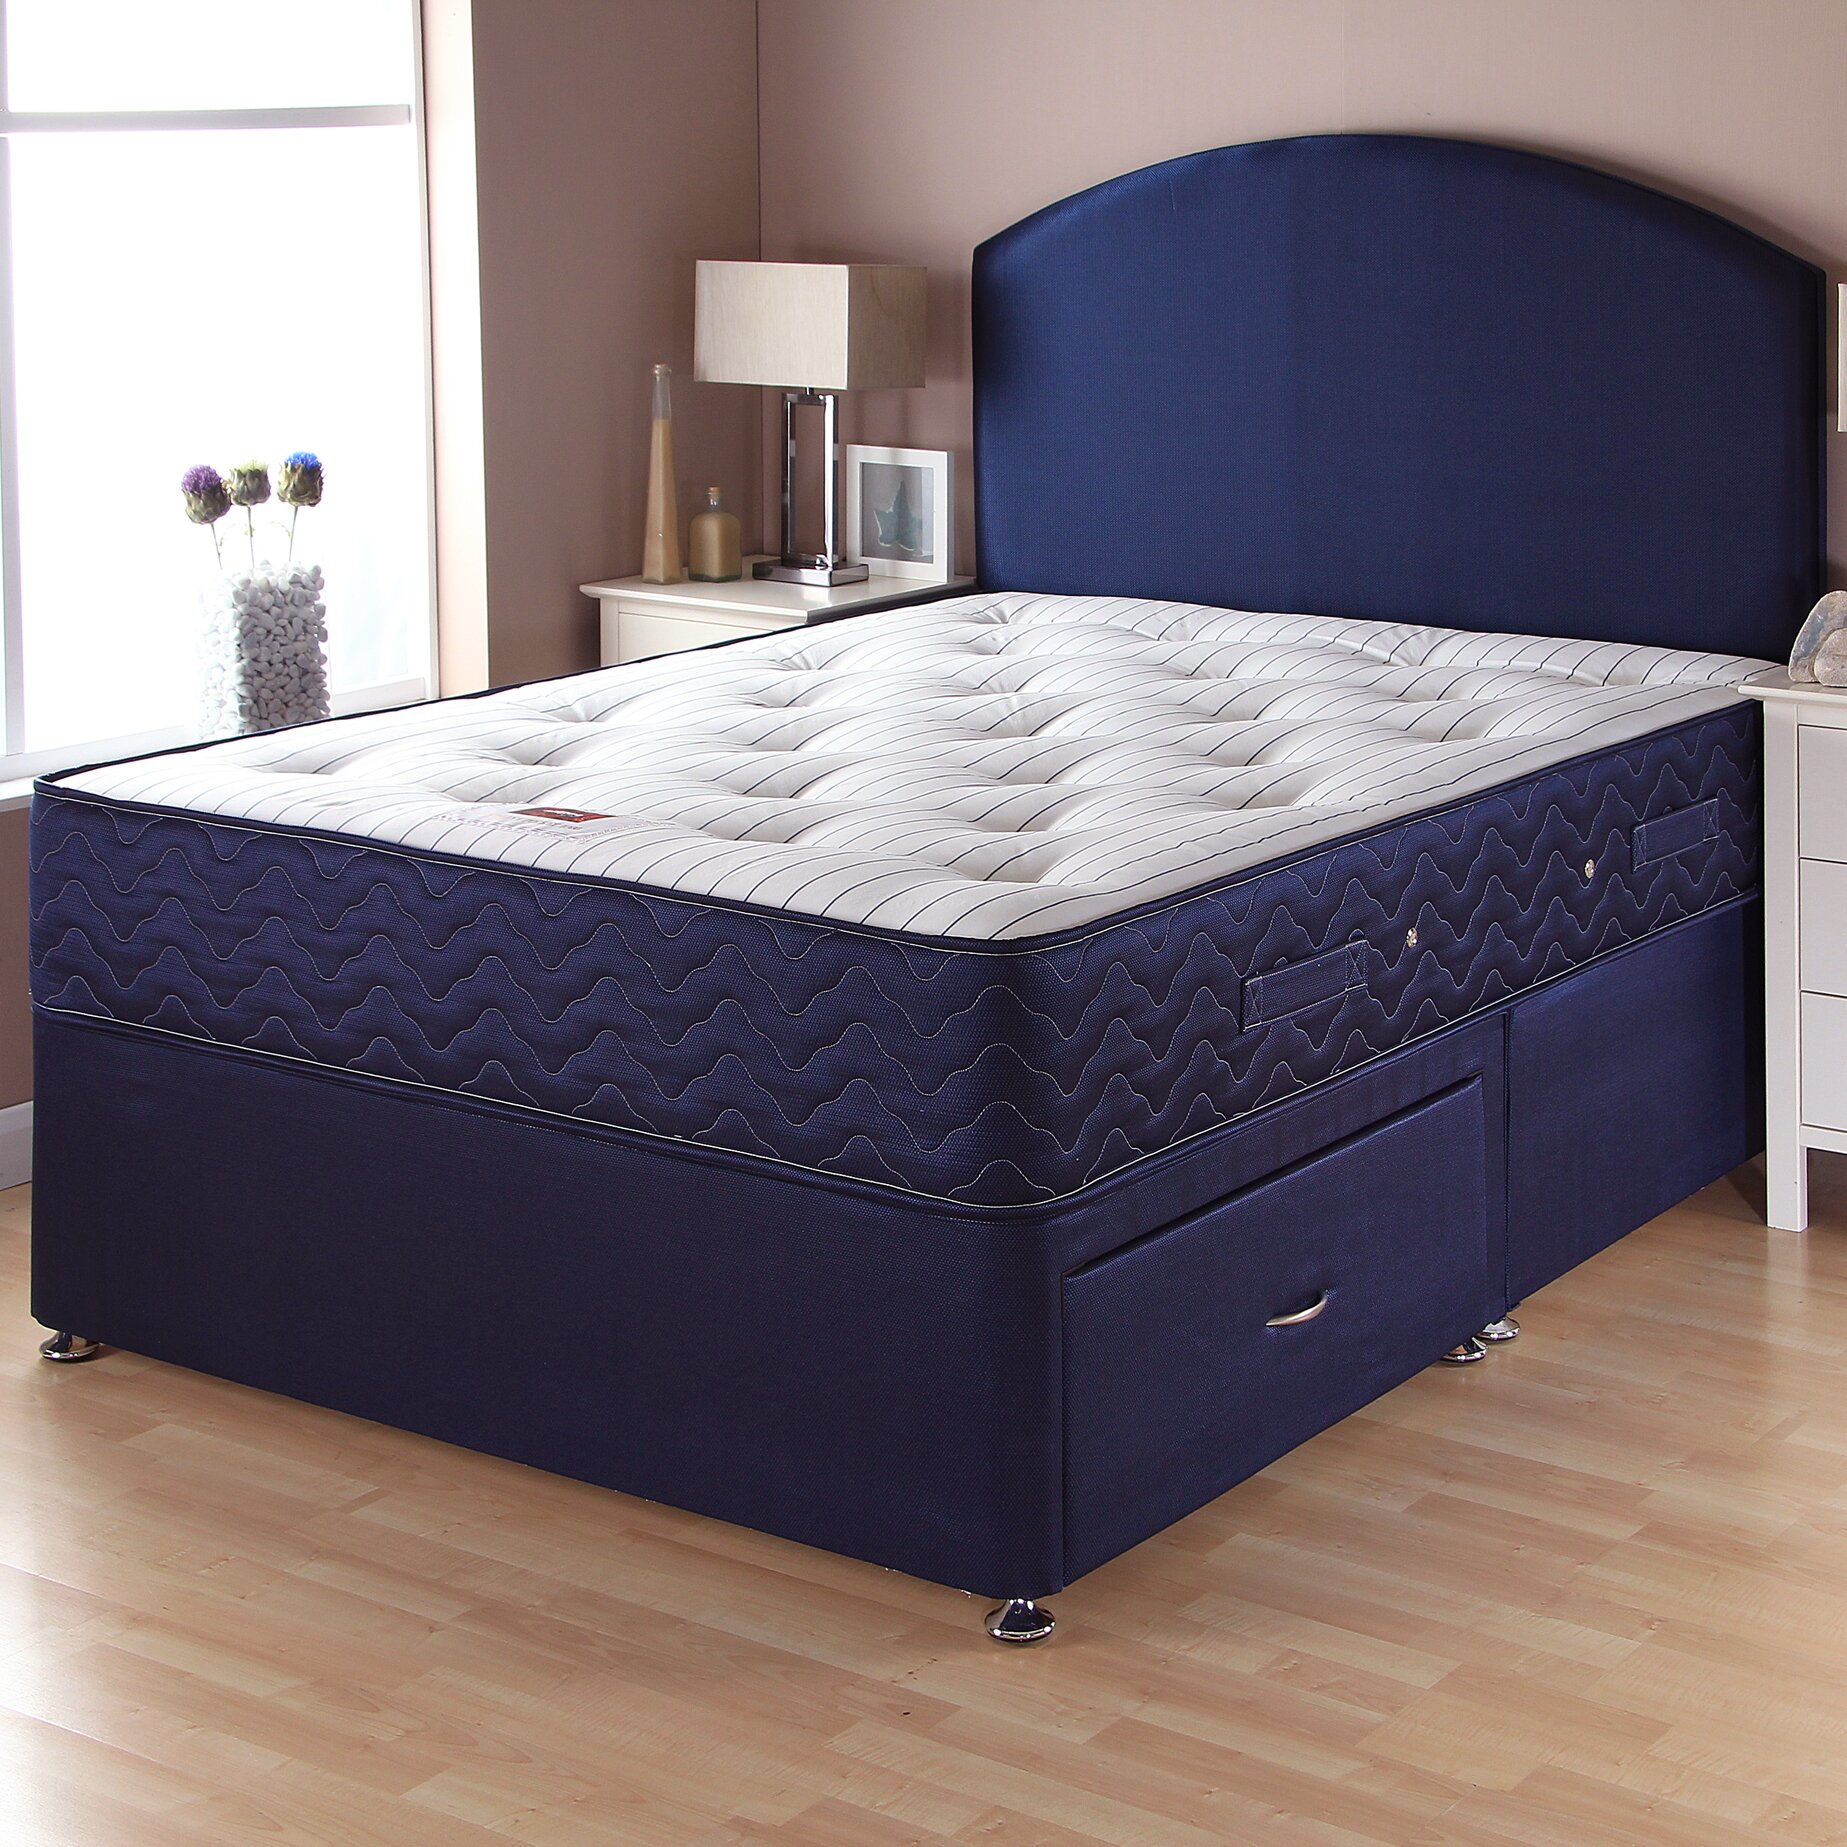 Airsprung beds catalina pocket sprung divan bed wayfair uk for King size divan bed sale